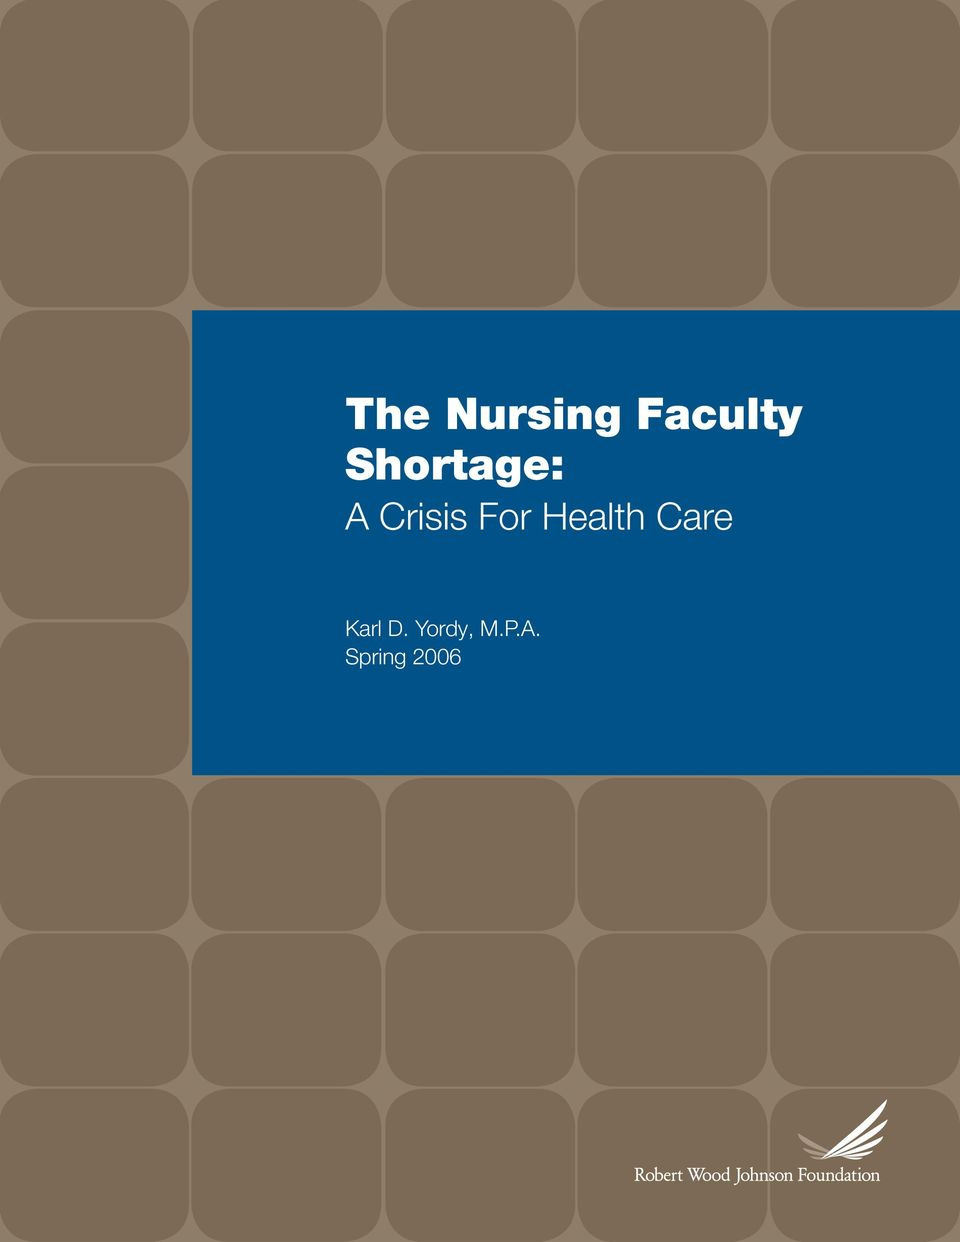 the factors that might contribute to the shortage of nurses in the future Regarding shortages in nurse staffing, half of nurses say the nursing shortage has worsened over the last five in times of acute shortage is a major challenge for the industry today and for the foreseeable future between nurses and leadership is a challenge that can affect the supply of nurse leaders, turnover, retention.